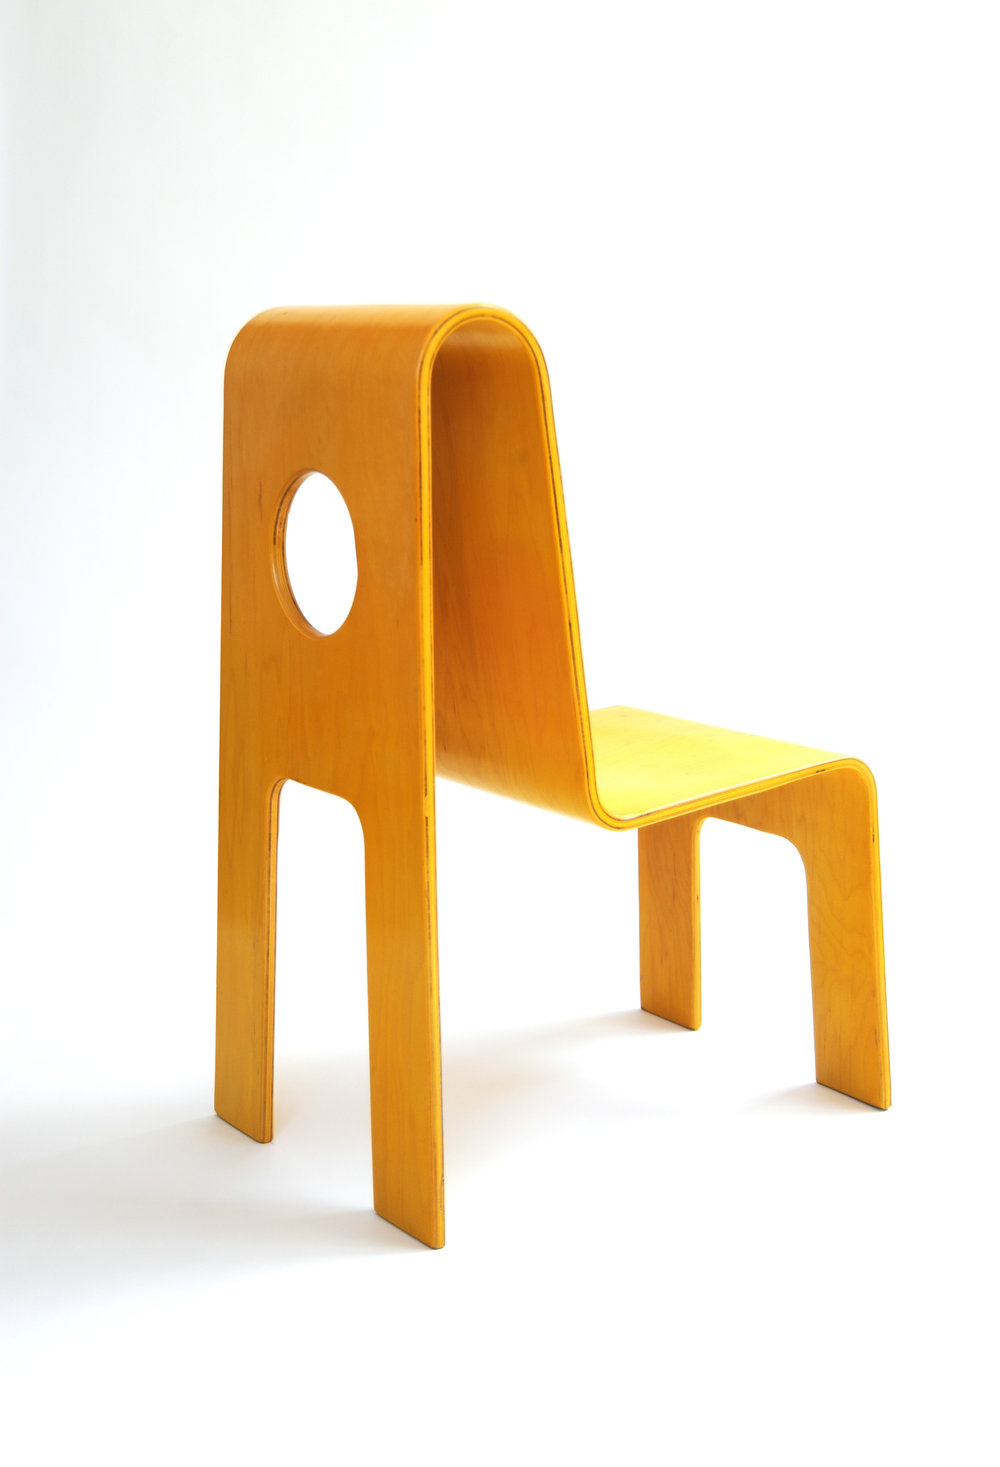 Yellow Cut Out Chair     I  sku Kinder-Link     Unknown Origin    Unknown Production    1990s     Bentwood select maple veneer with acrylic poly finish (water based pigment with clear top coat acrylic finish)      seat Back H 25 in, W 17 in, D 10.5 in, (Seat H: 12 in)     LIST PRICE:  $900     DESIGNER DISCOUNT PRICE:    LEAD TIME: 3-5 Days Shipping & Handling    QUANTITY IN STOCK: 1    ONLINE PLATFORMS: kM Web, Artsy